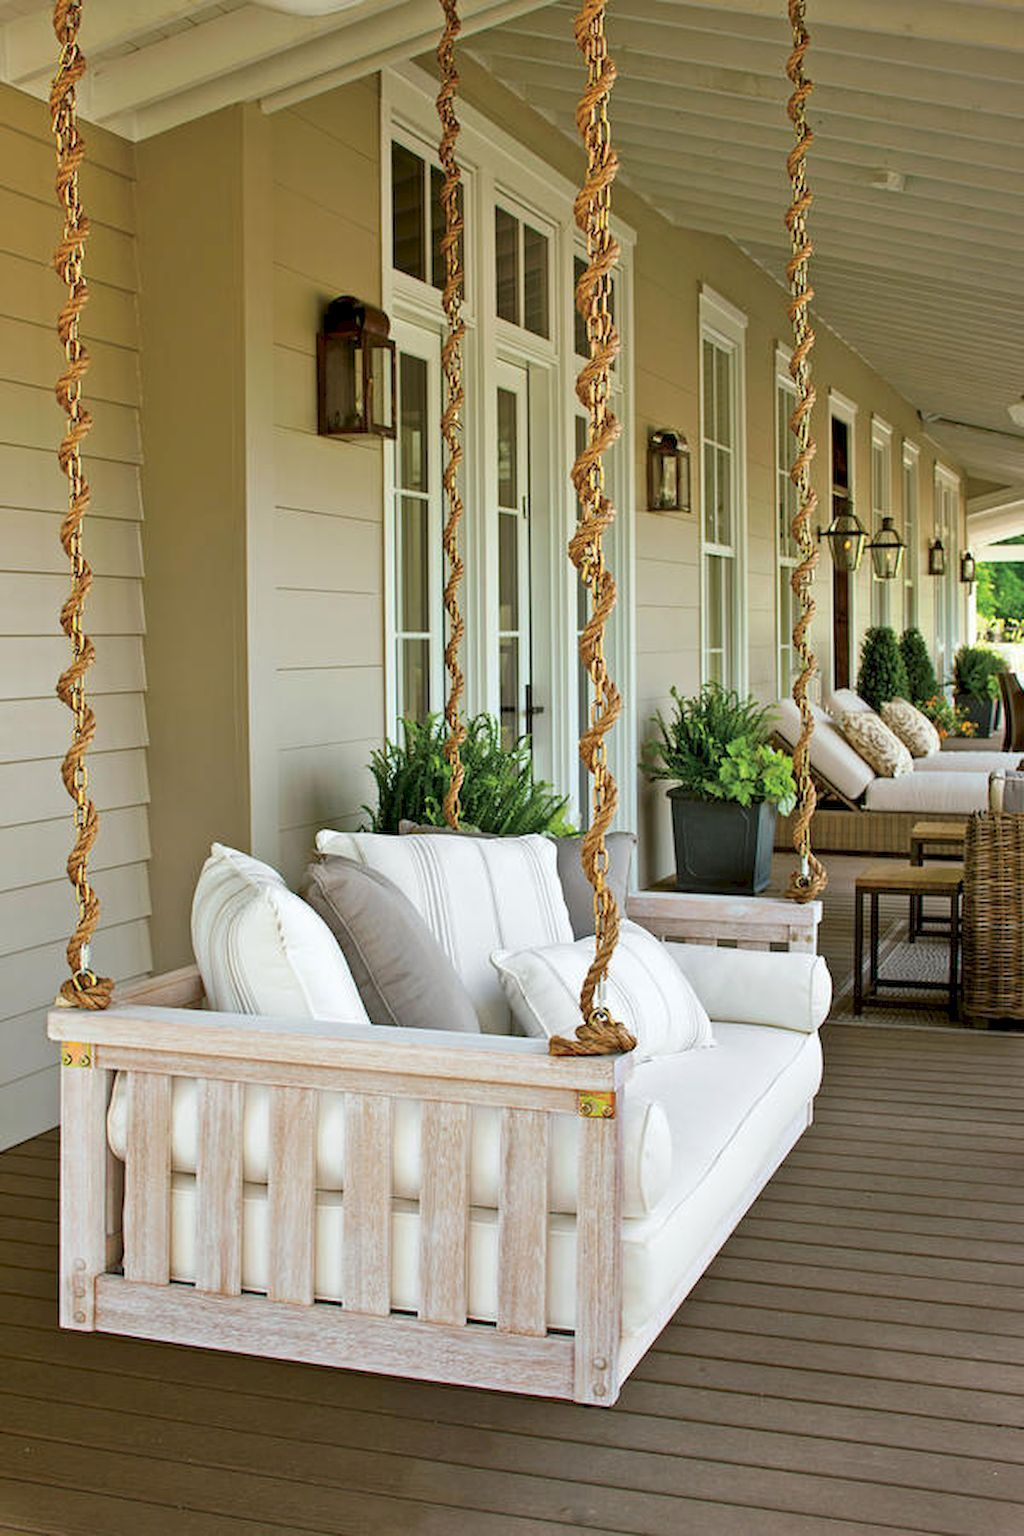 Incredible 75 Small Front Porch Makeover Design Ideas Https Housespecially Com 2017 09 29 75 Small Front Porch Makeover Des Home Decor House Front Porch Home